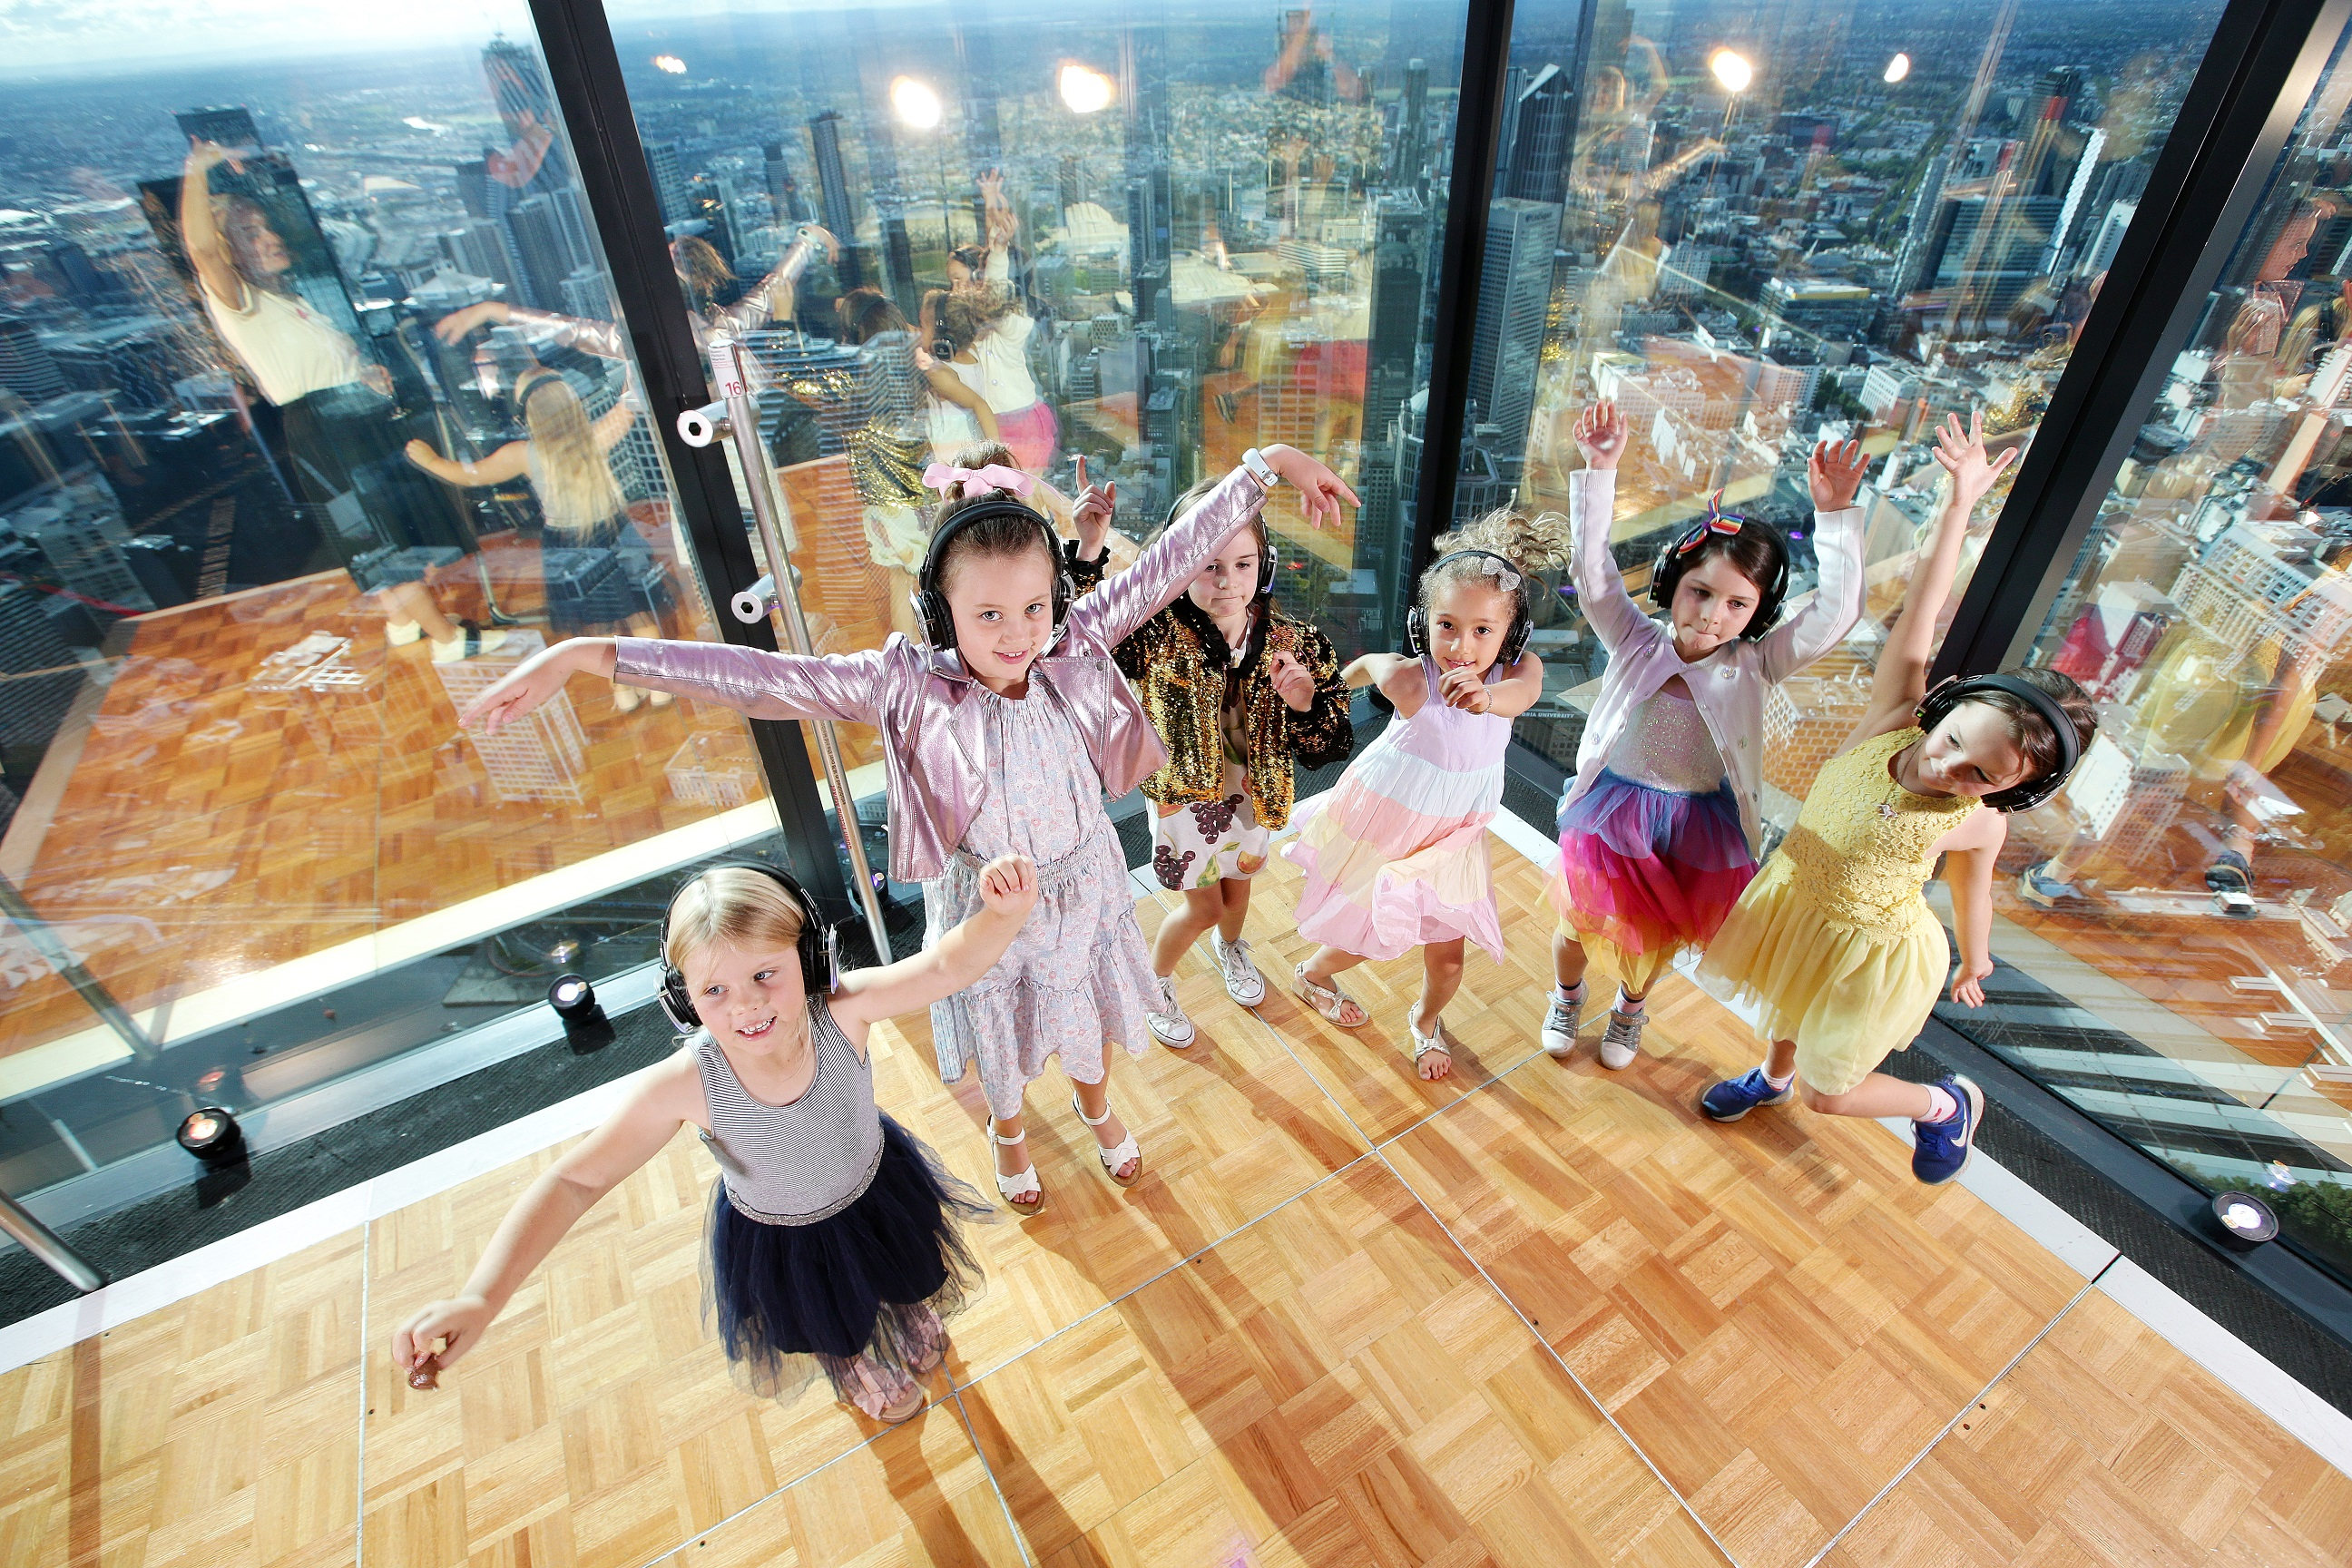 Eureka Skydeck To Host The World's Highest Silent Kids Disco